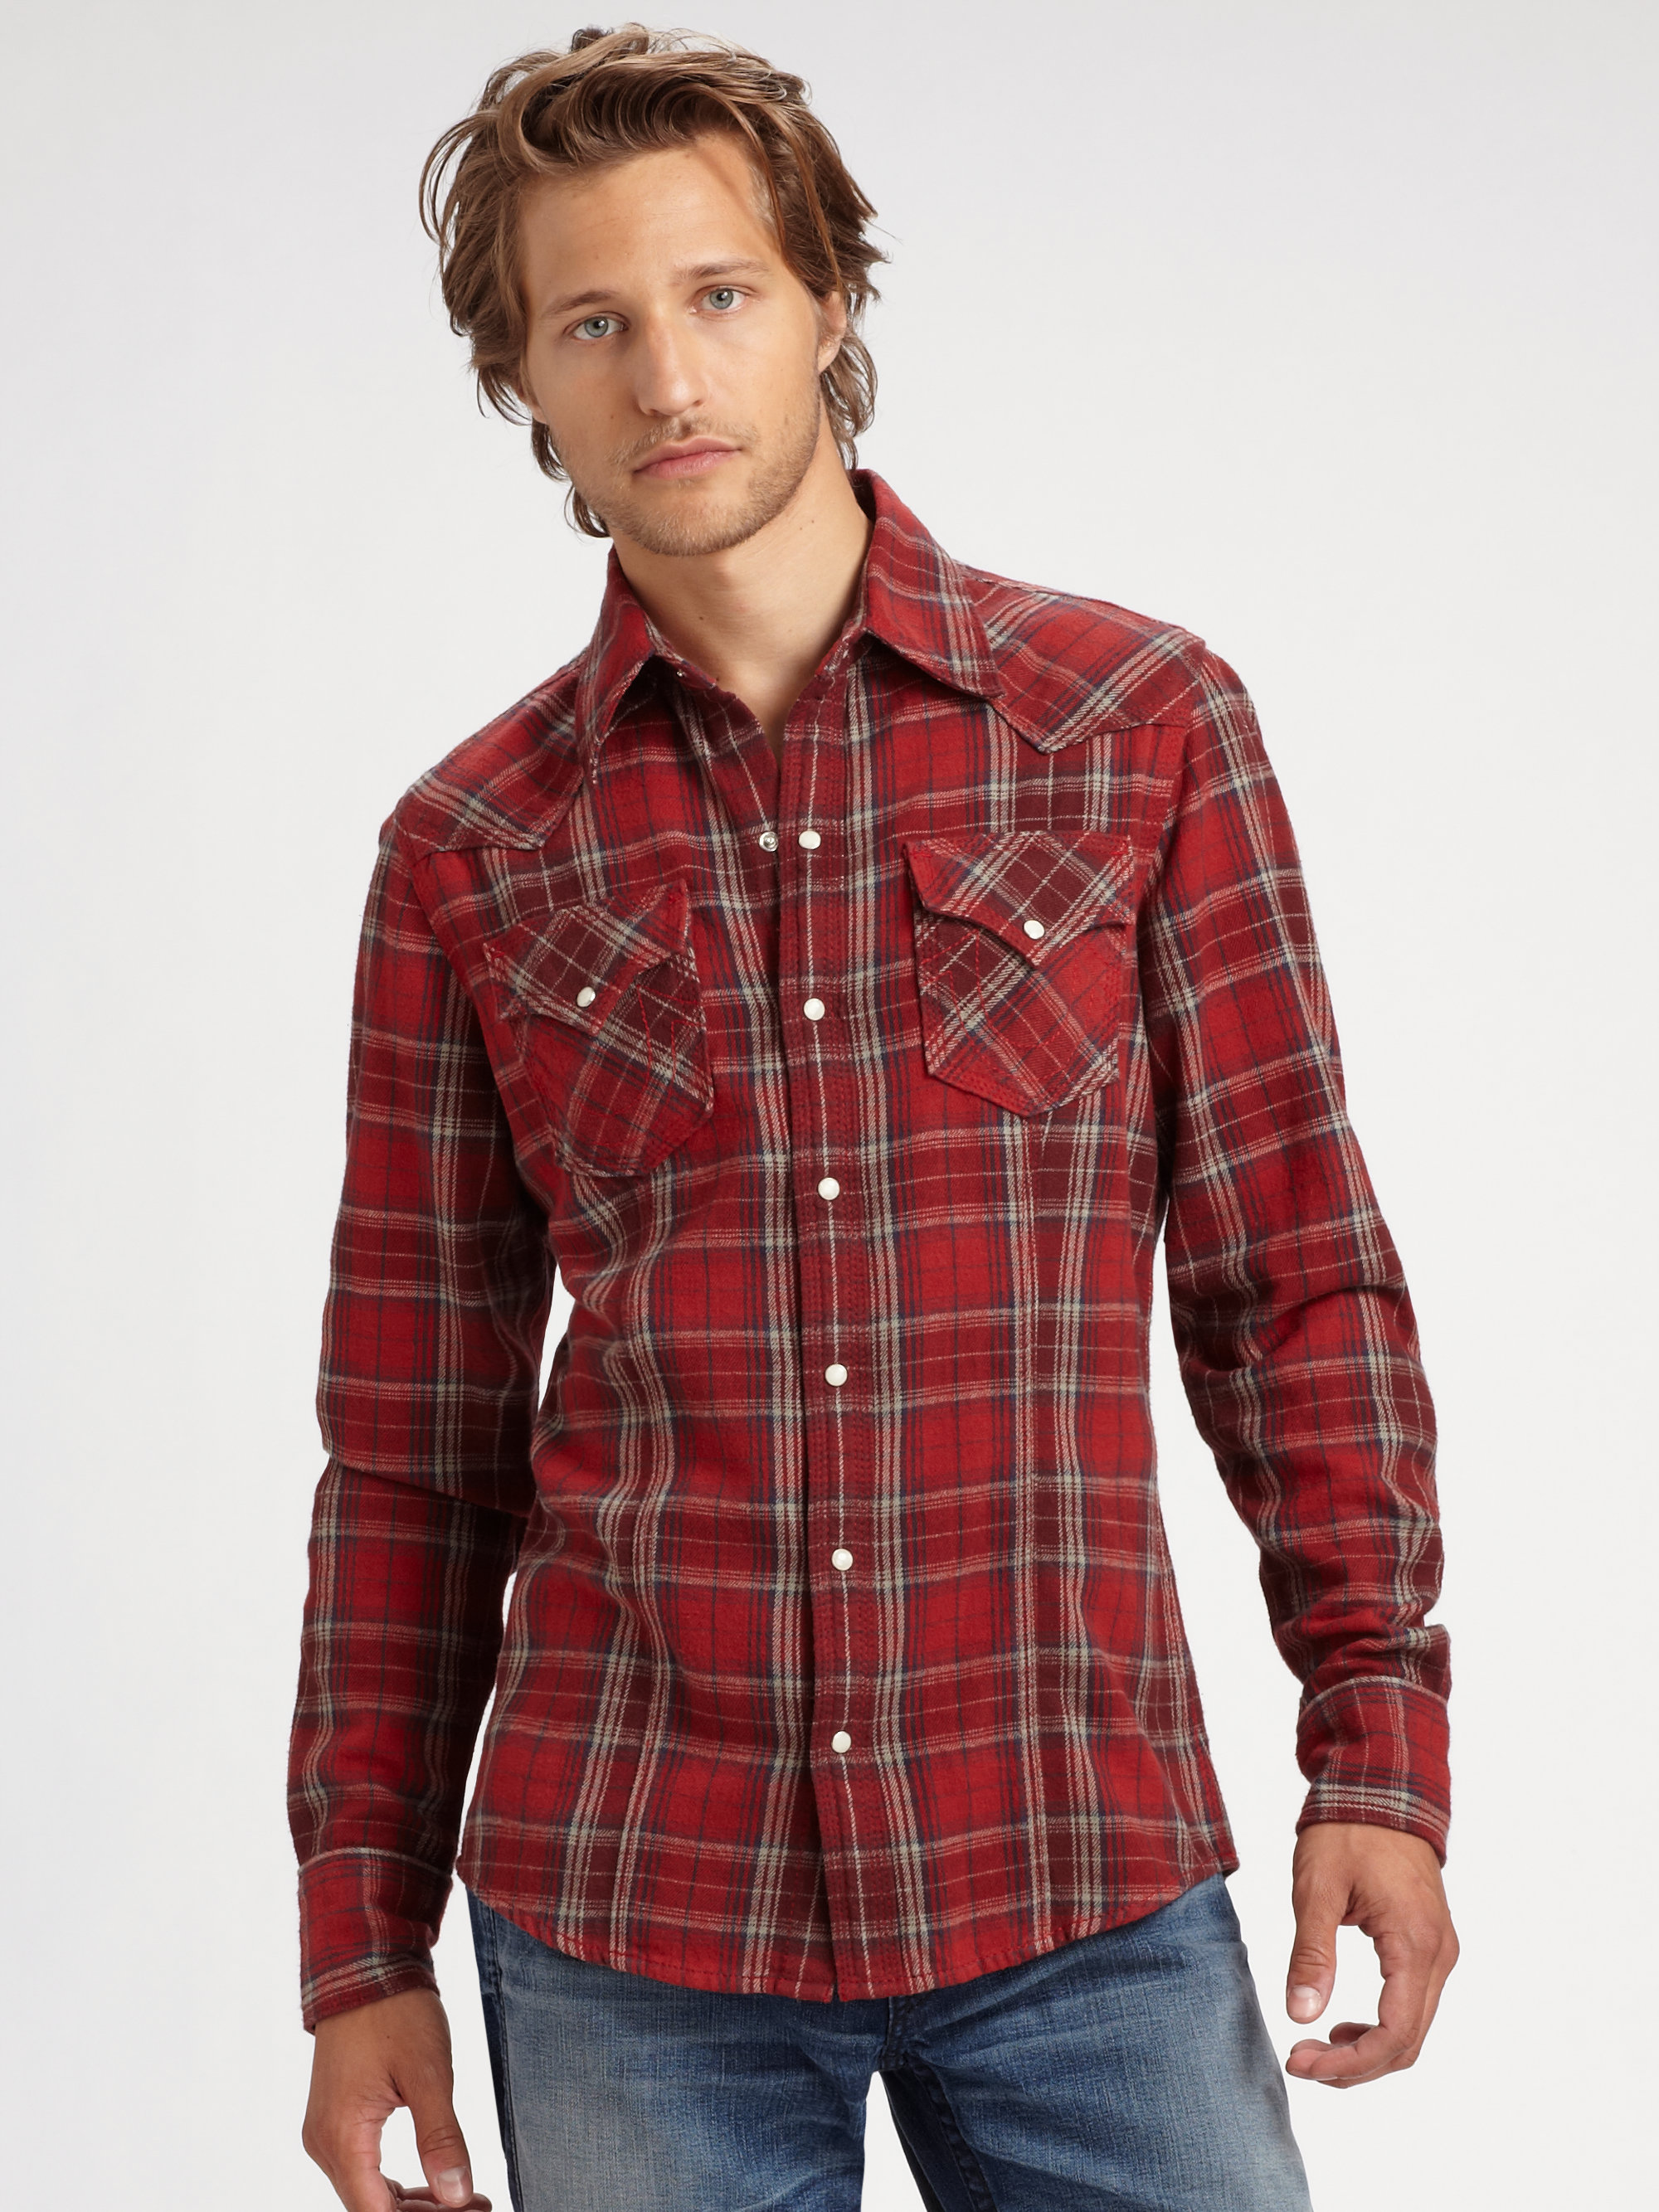 We carry long sleeve shirts, short sleeve shirts, plaid shirts, flannel shirts, dress shirts, t-shirts and more priced low for any budget. Sheplers is the perfect place to .